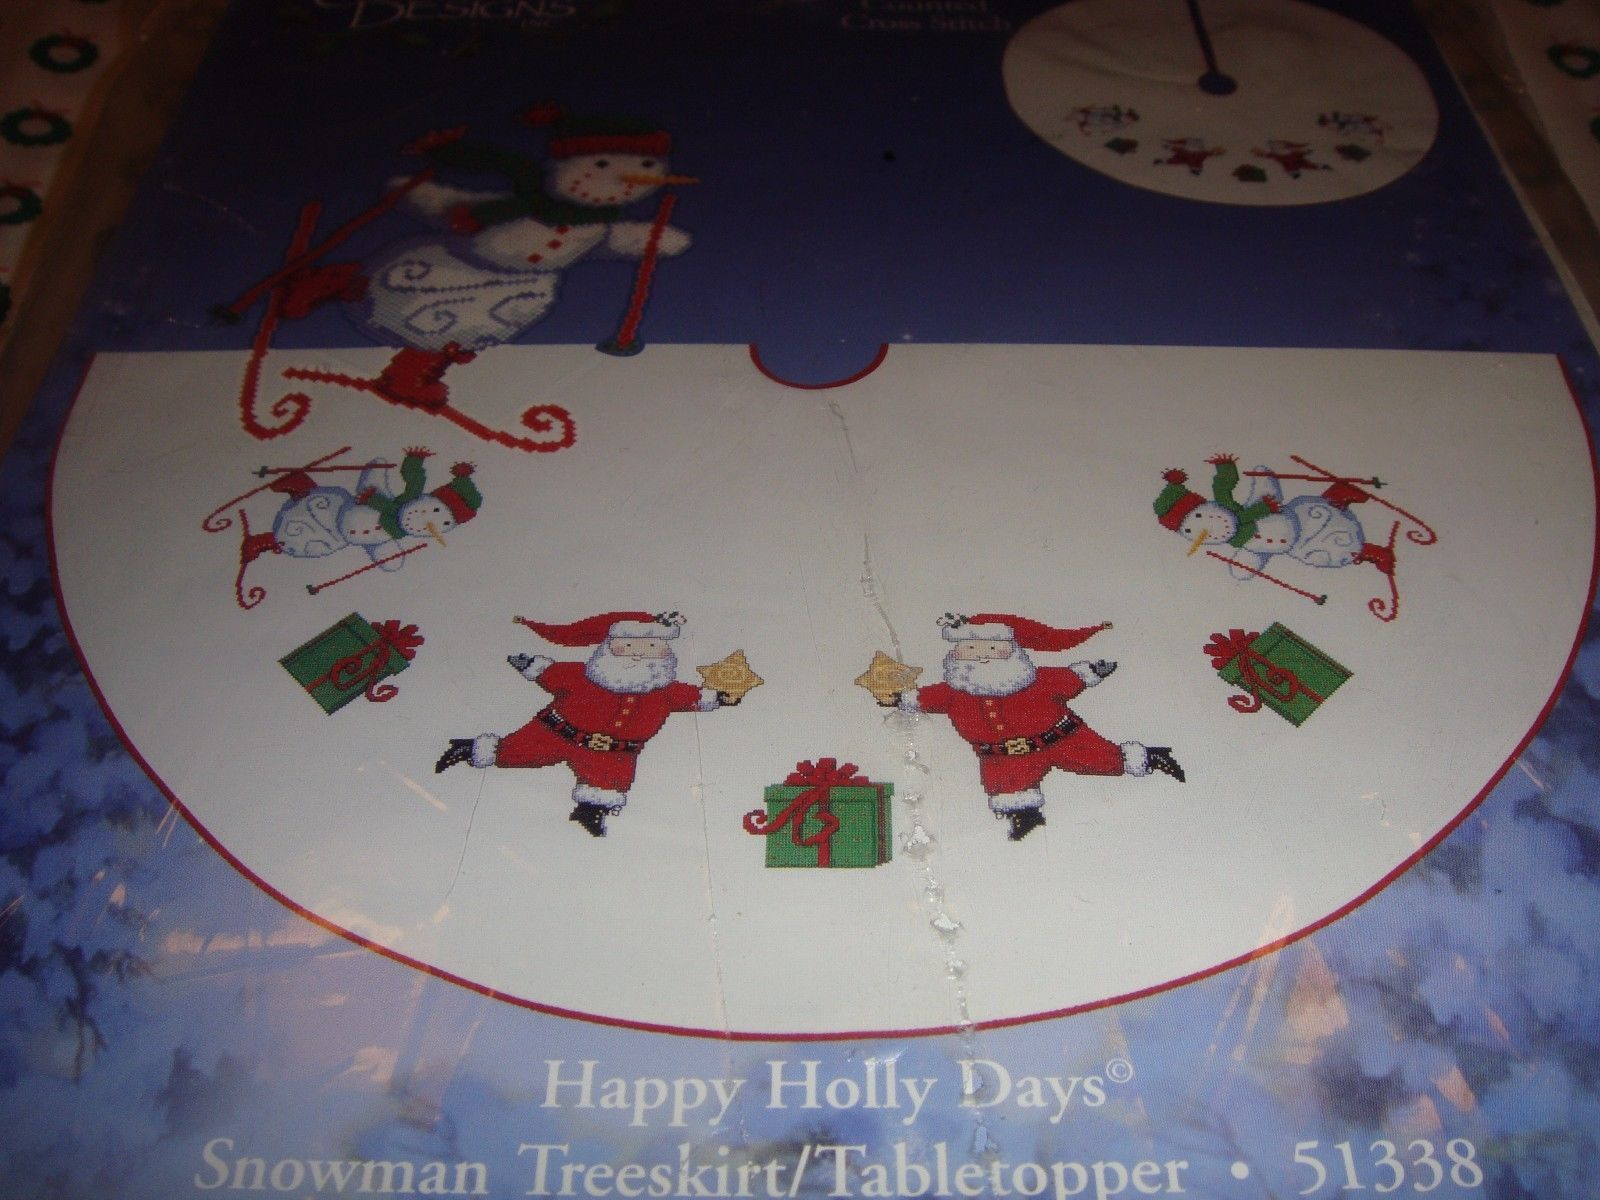 Cross Stitch Happy Holiday Snowman Tree Skirt-Tabletopper Kit  image 3